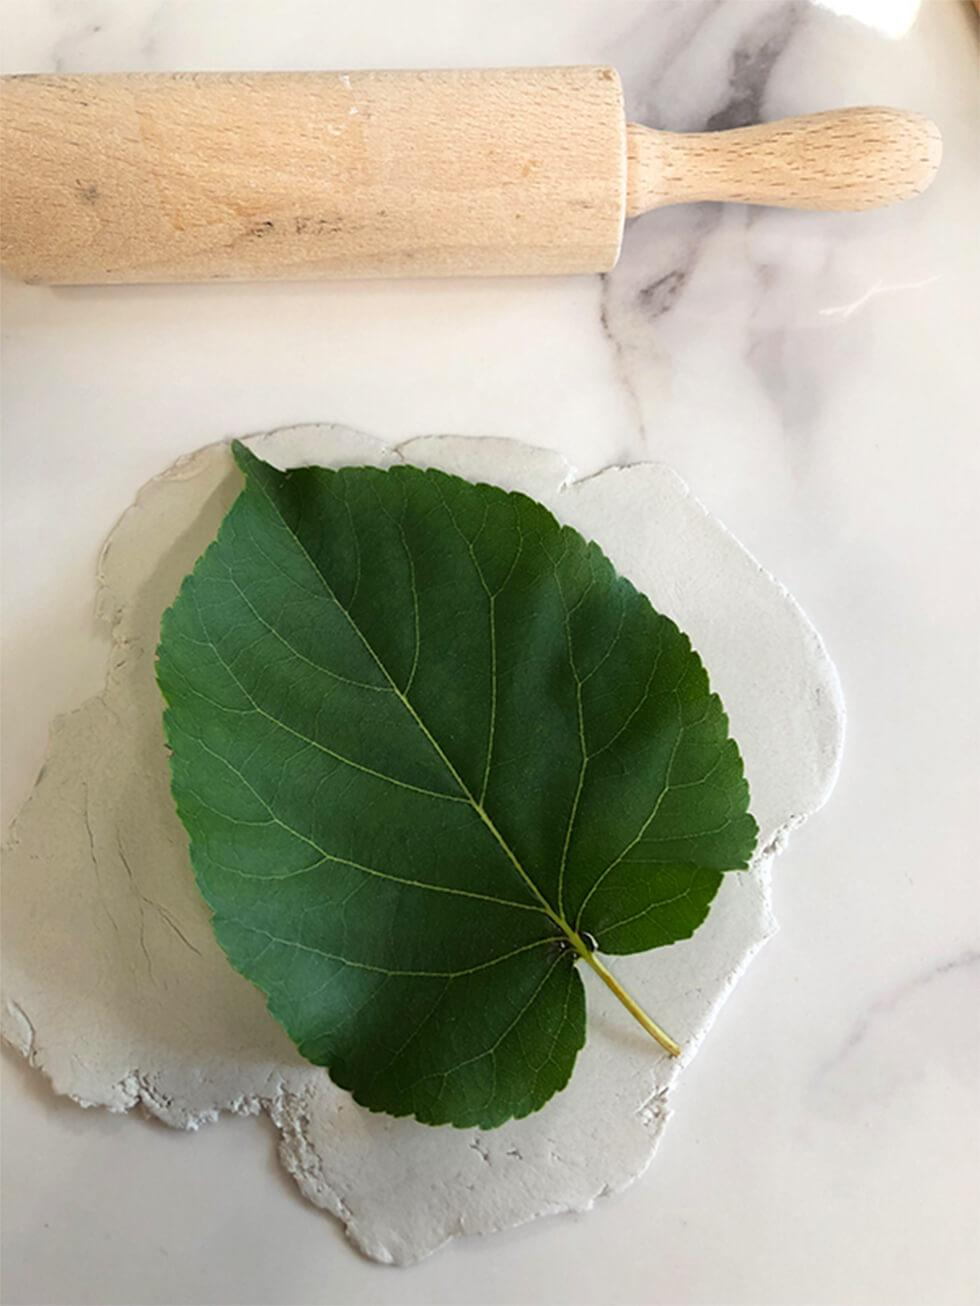 DIY leaf-shaped metallic trinket dish - Step 1 - roll out the clay and press a leaf firmly to imprint its veins